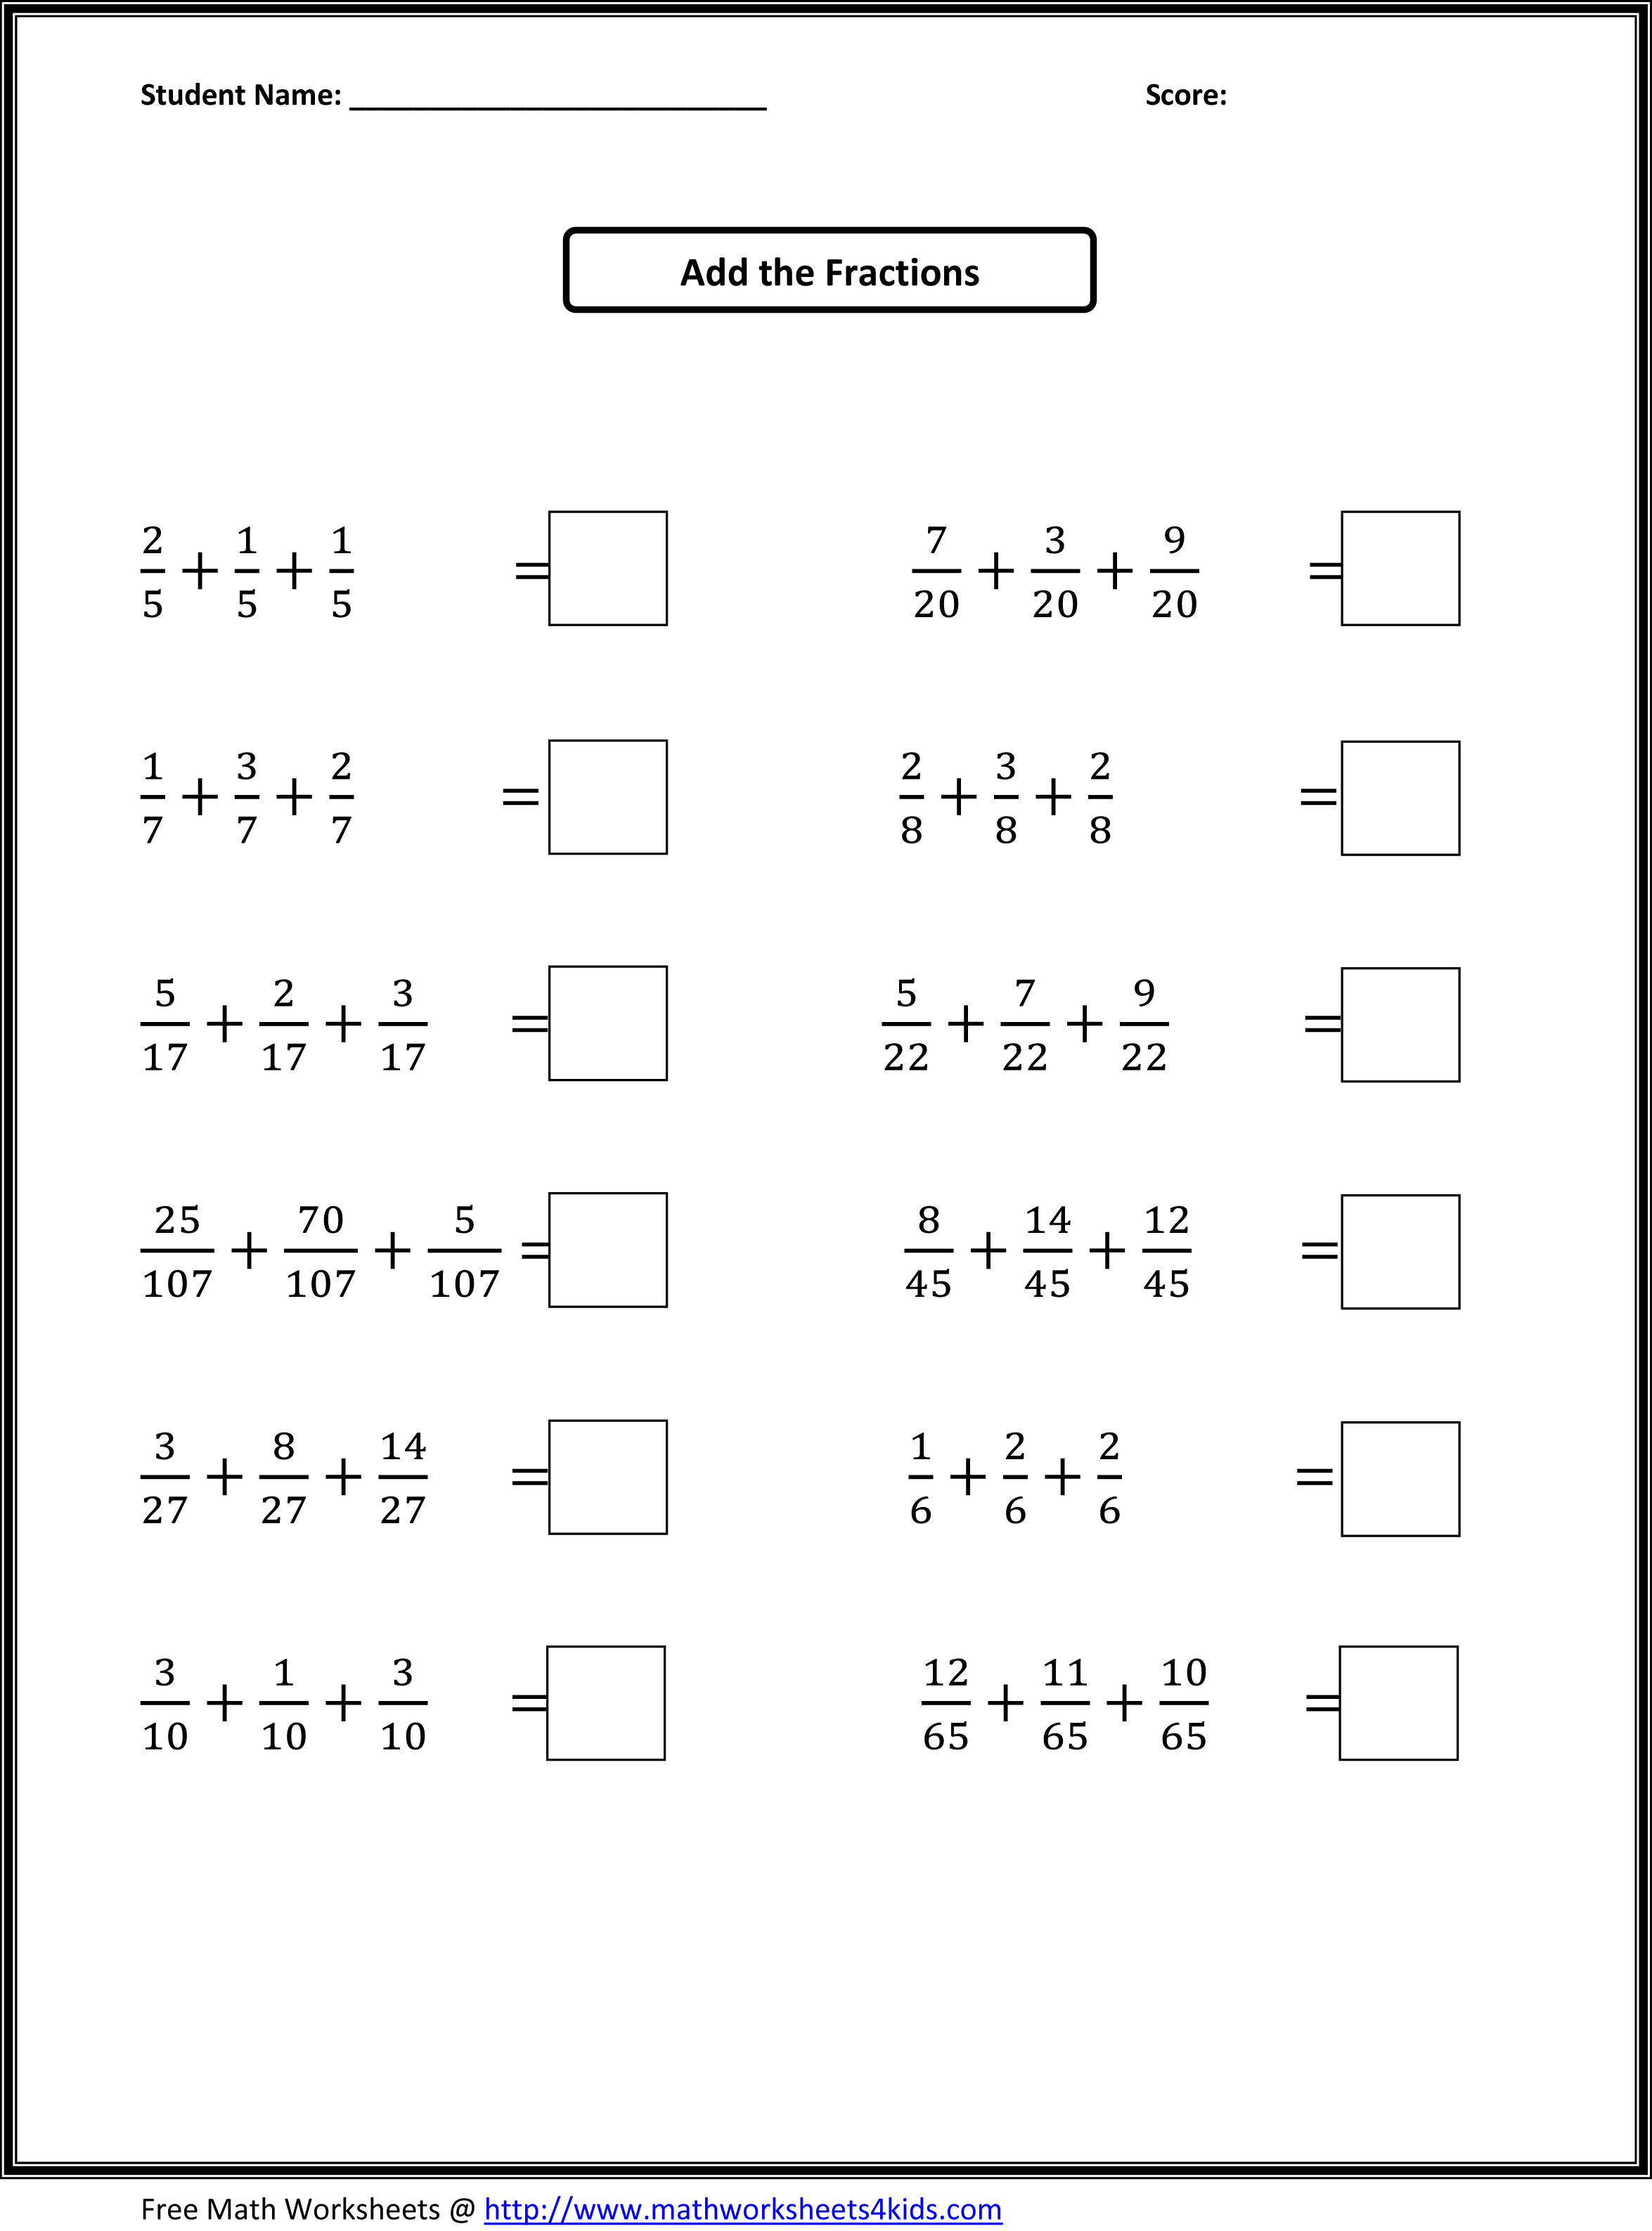 math worksheet : fraction worksheets grade 7  synhoff : Adding And Subtracting Fraction Worksheet